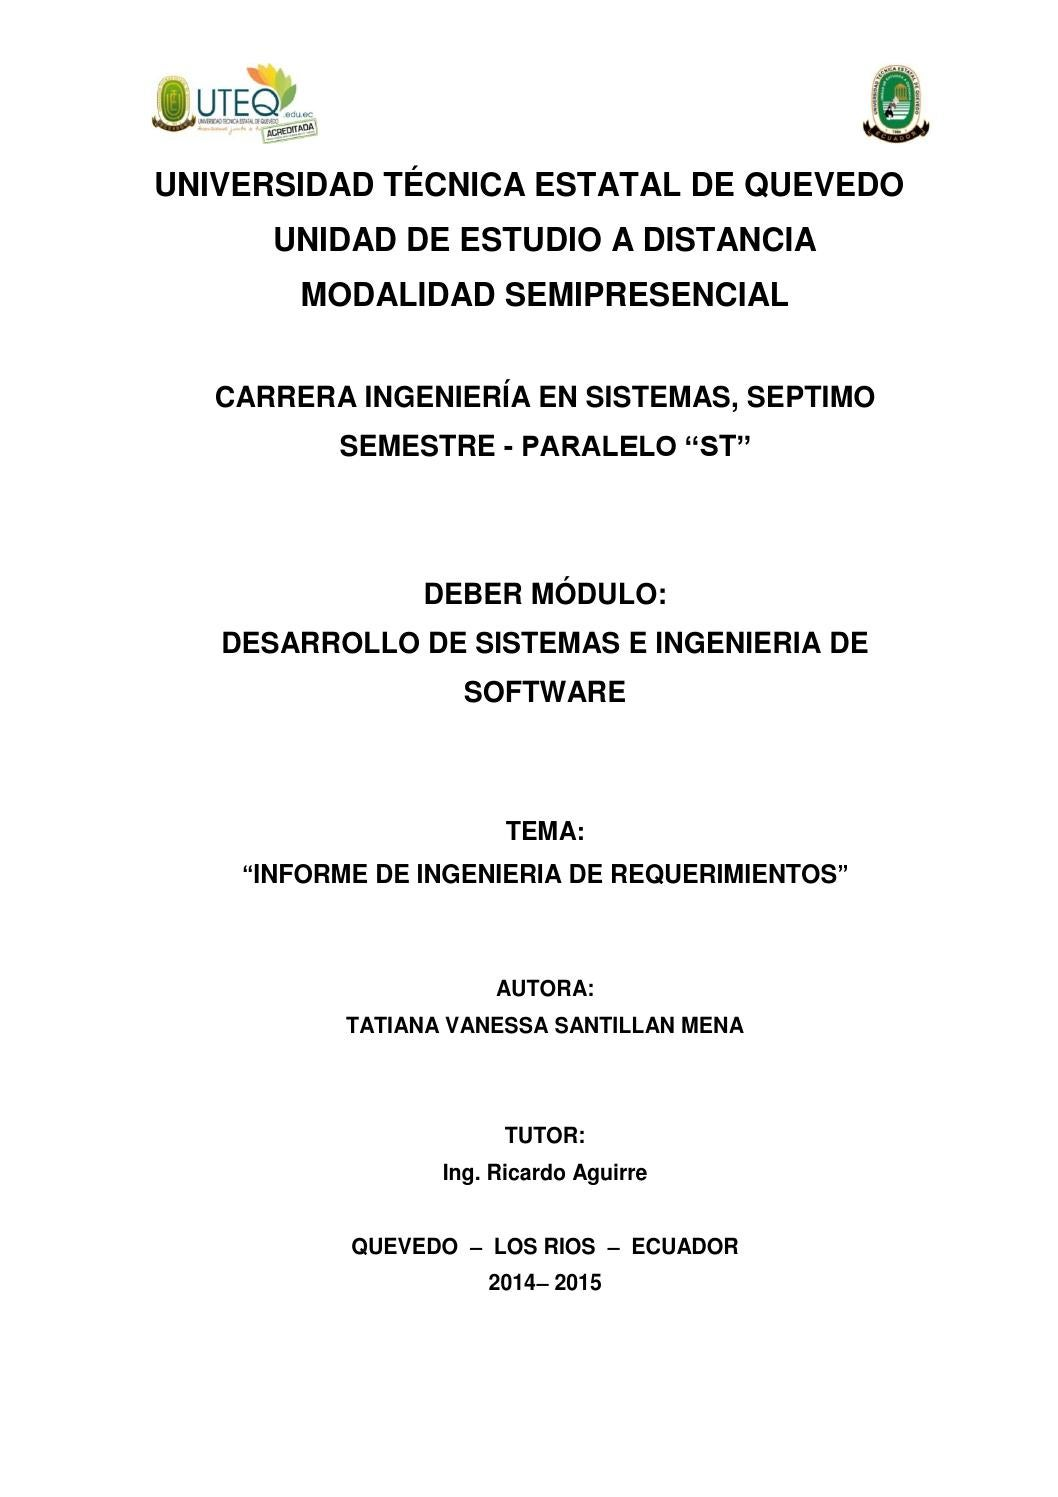 Informe ing requerimientos by Linda Taty - issuu